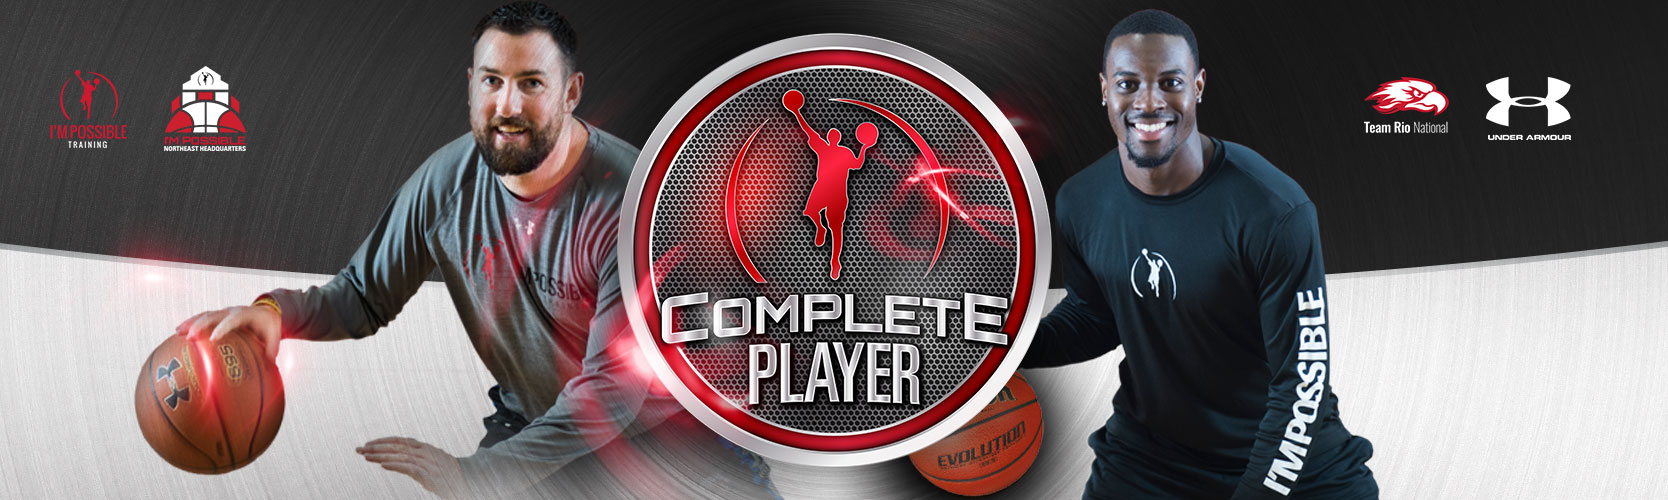 Complete Player Program